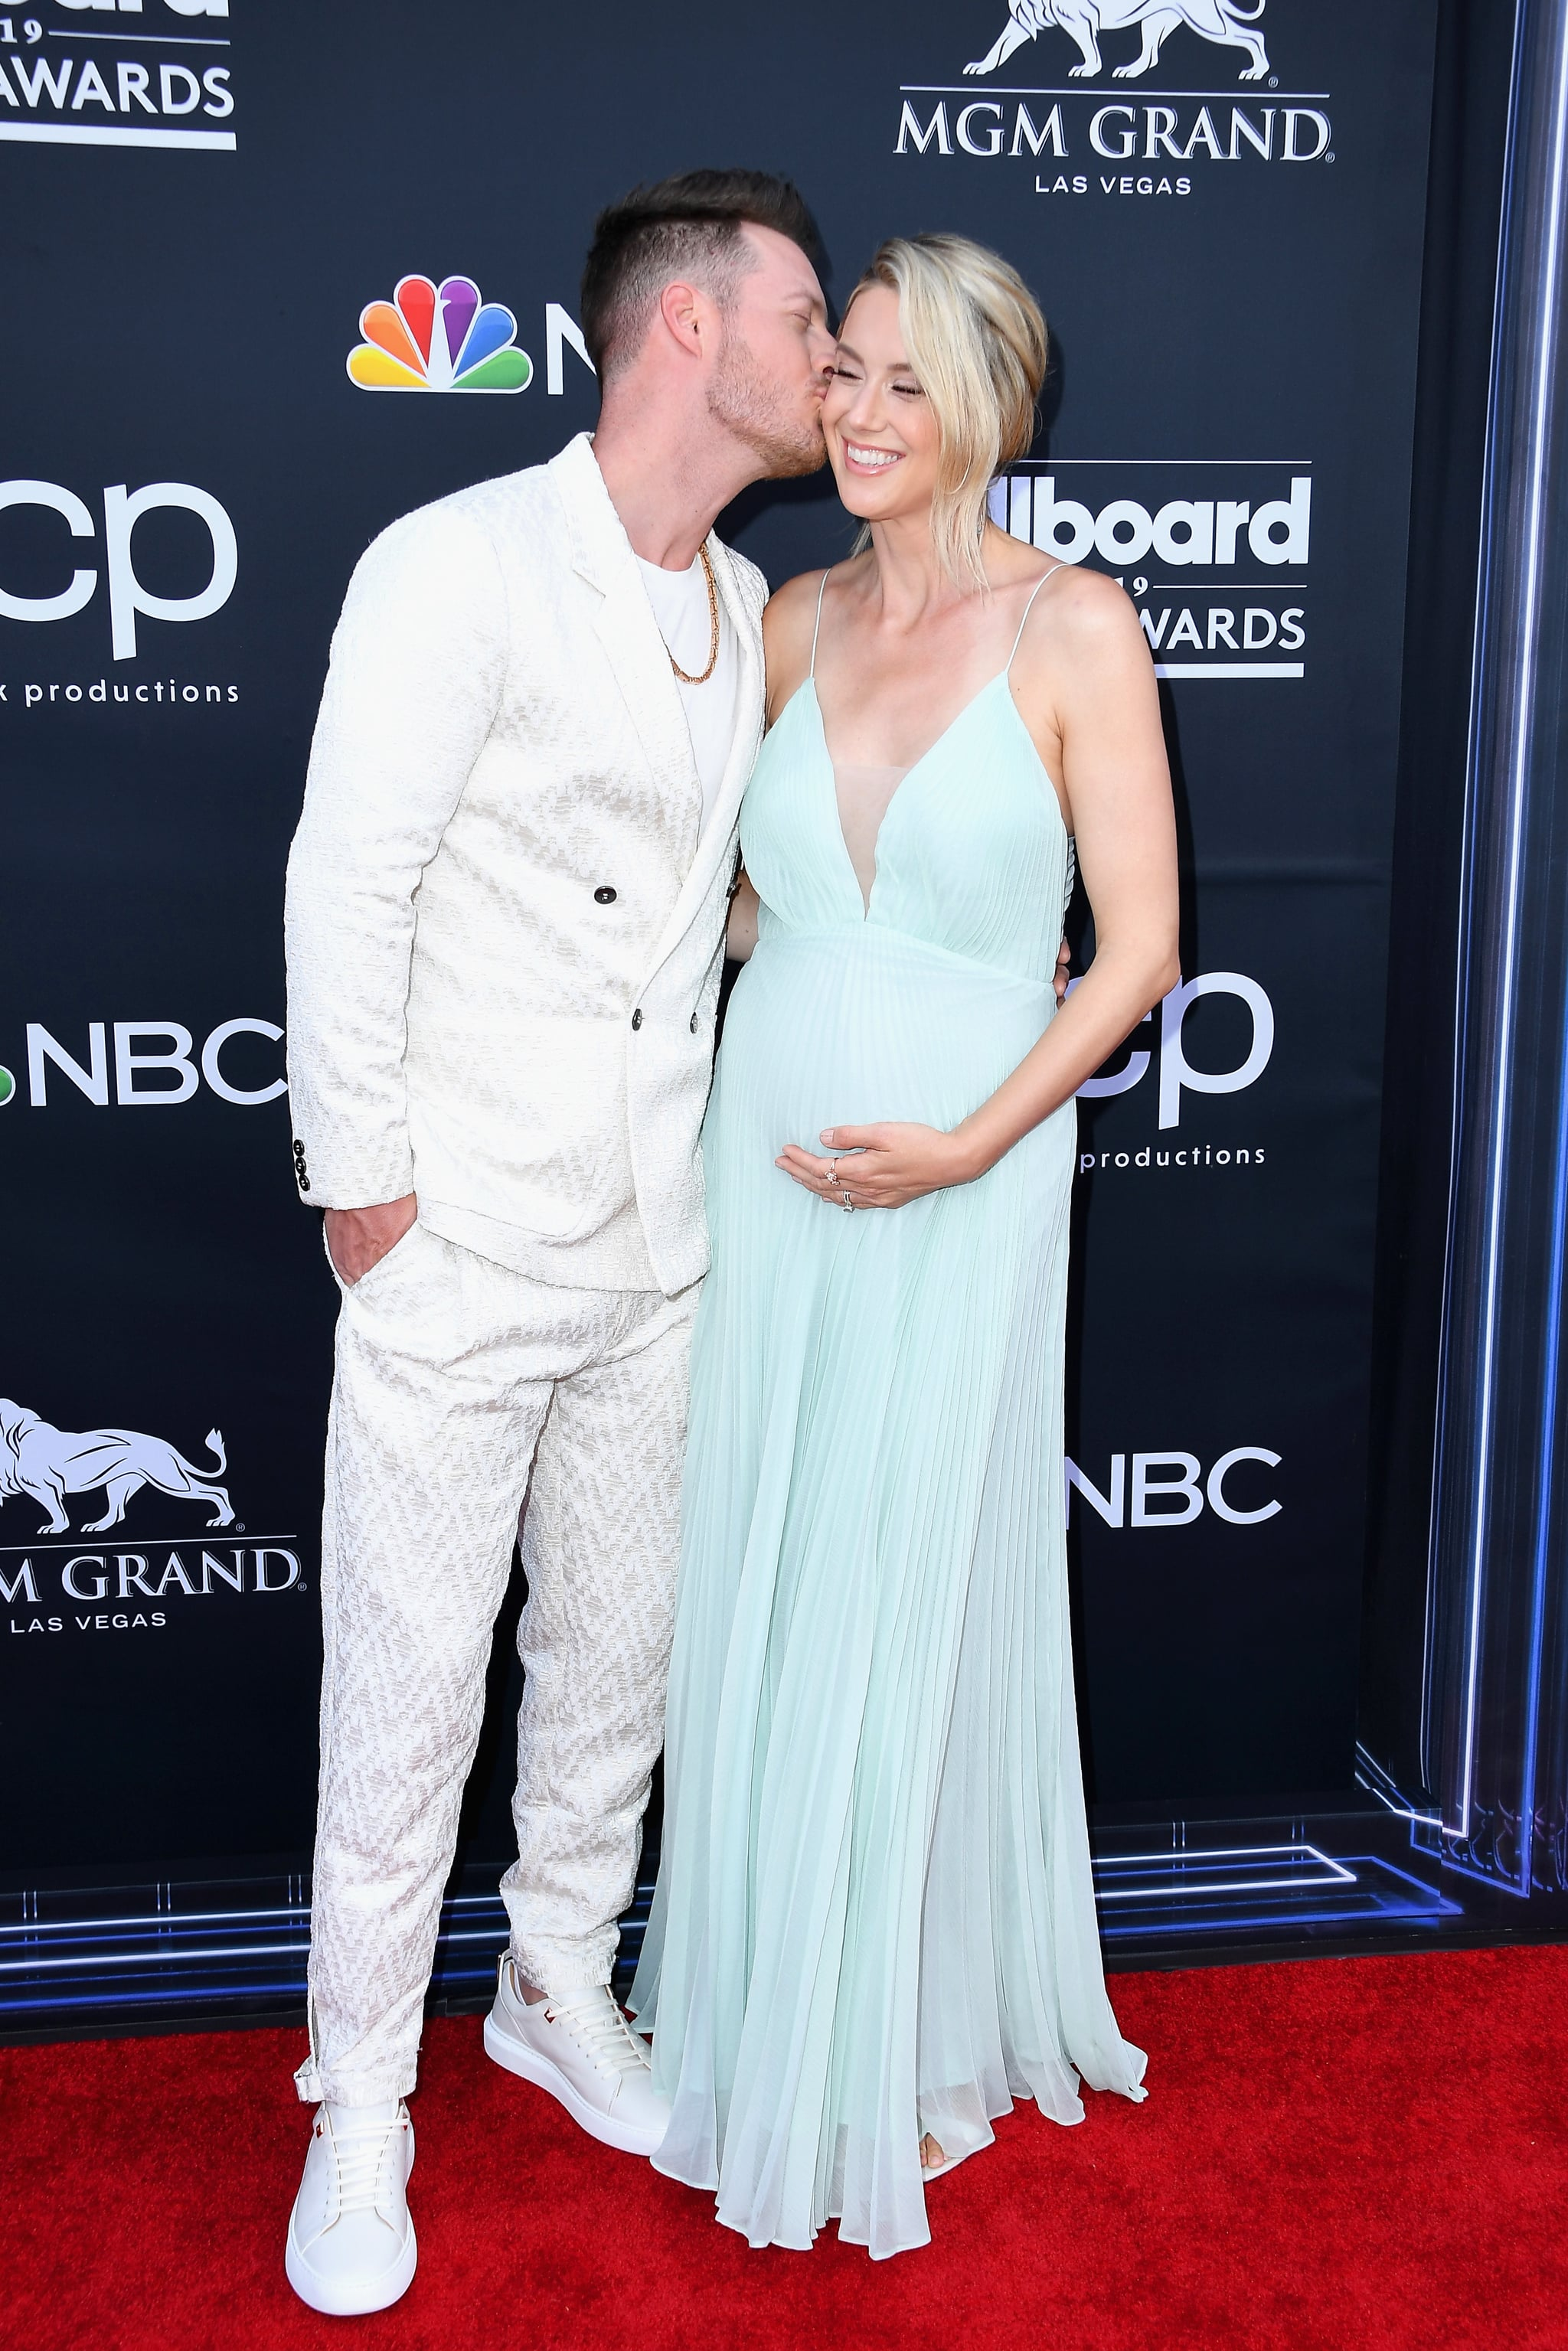 LAS VEGAS, NV - MAY 01:  (L-R) Tyler Hubbard of Florida Georgia Line and Hayley Stommel Hubbard attend the 2019 Billboard Music Awards at MGM Grand Garden Arena on May 1, 2019 in Las Vegas, Nevada.  (Photo by Steve Granitz/WireImage)